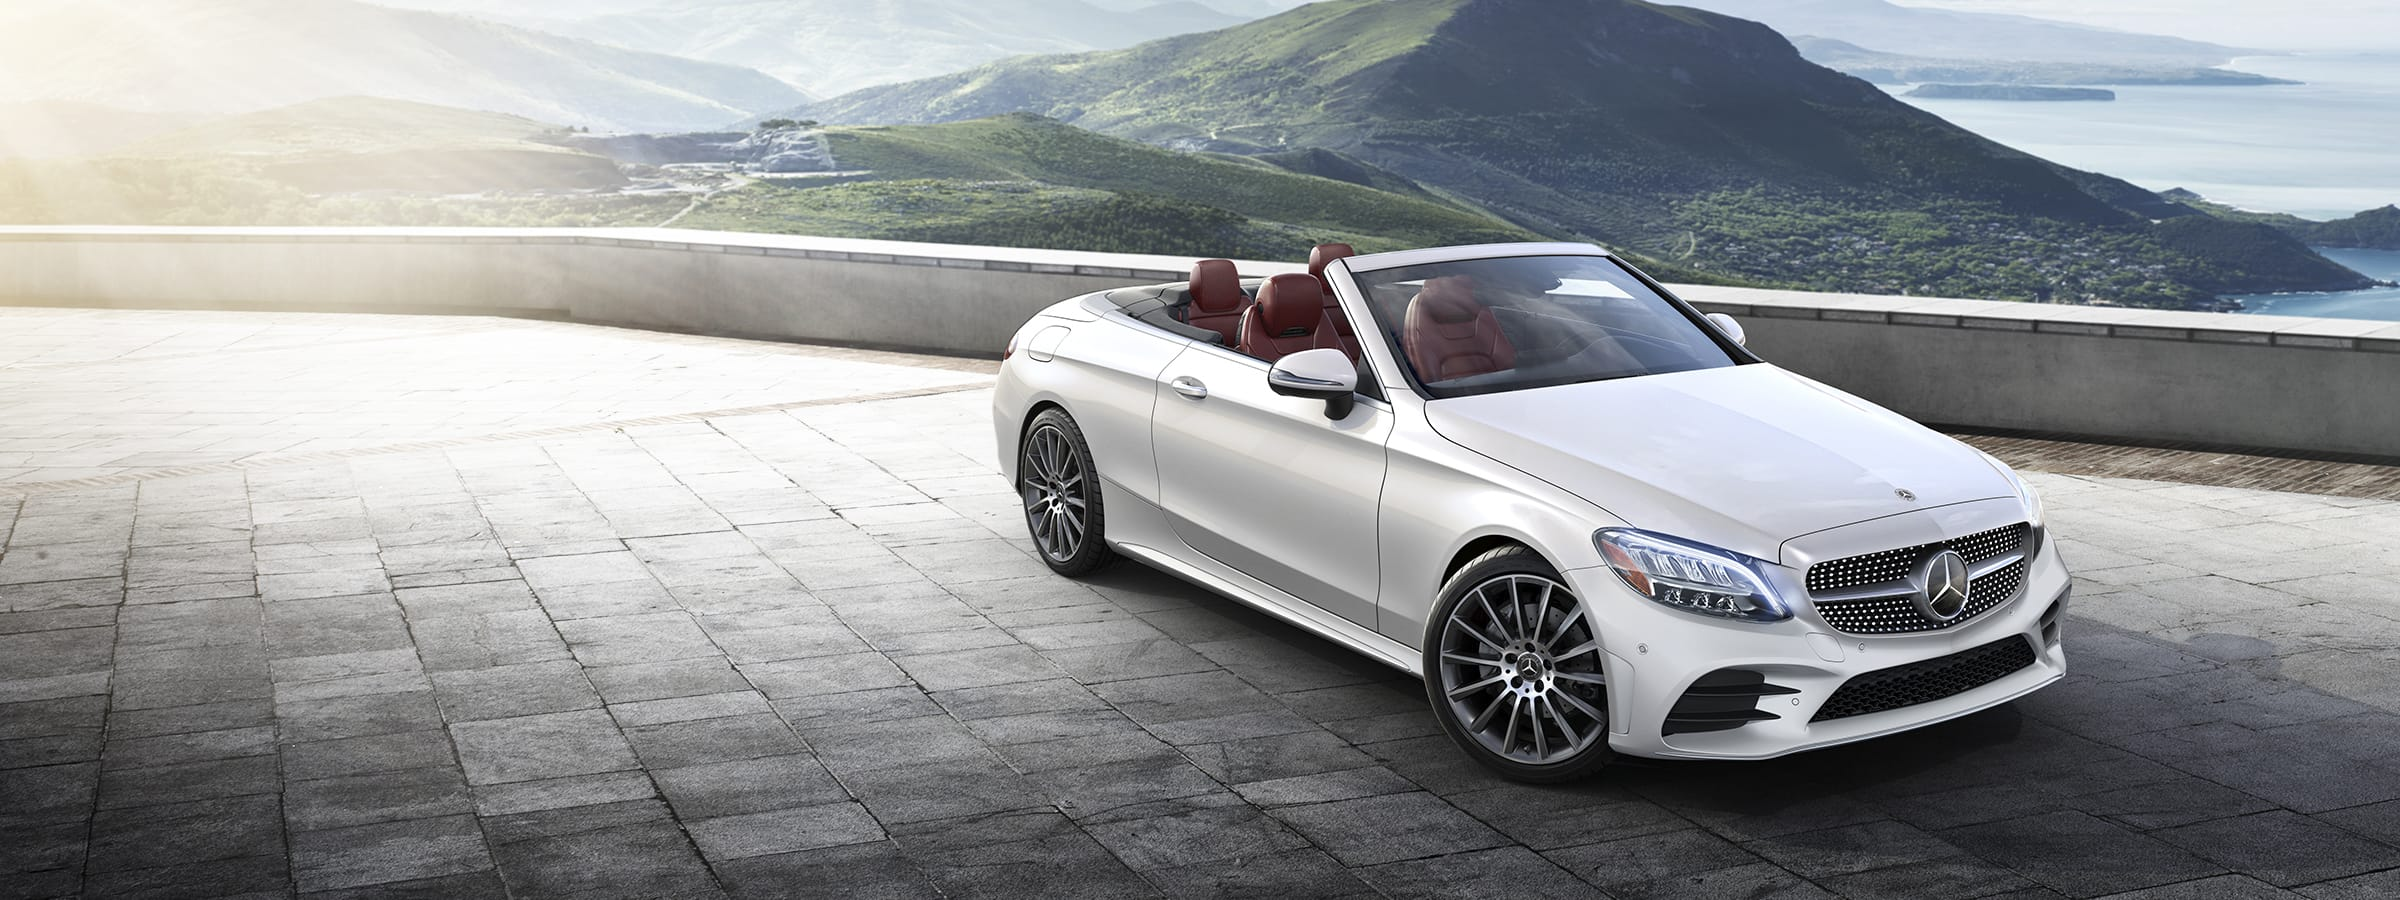 c class luxury performance cabriolets c 300 c 300 4matic. Black Bedroom Furniture Sets. Home Design Ideas